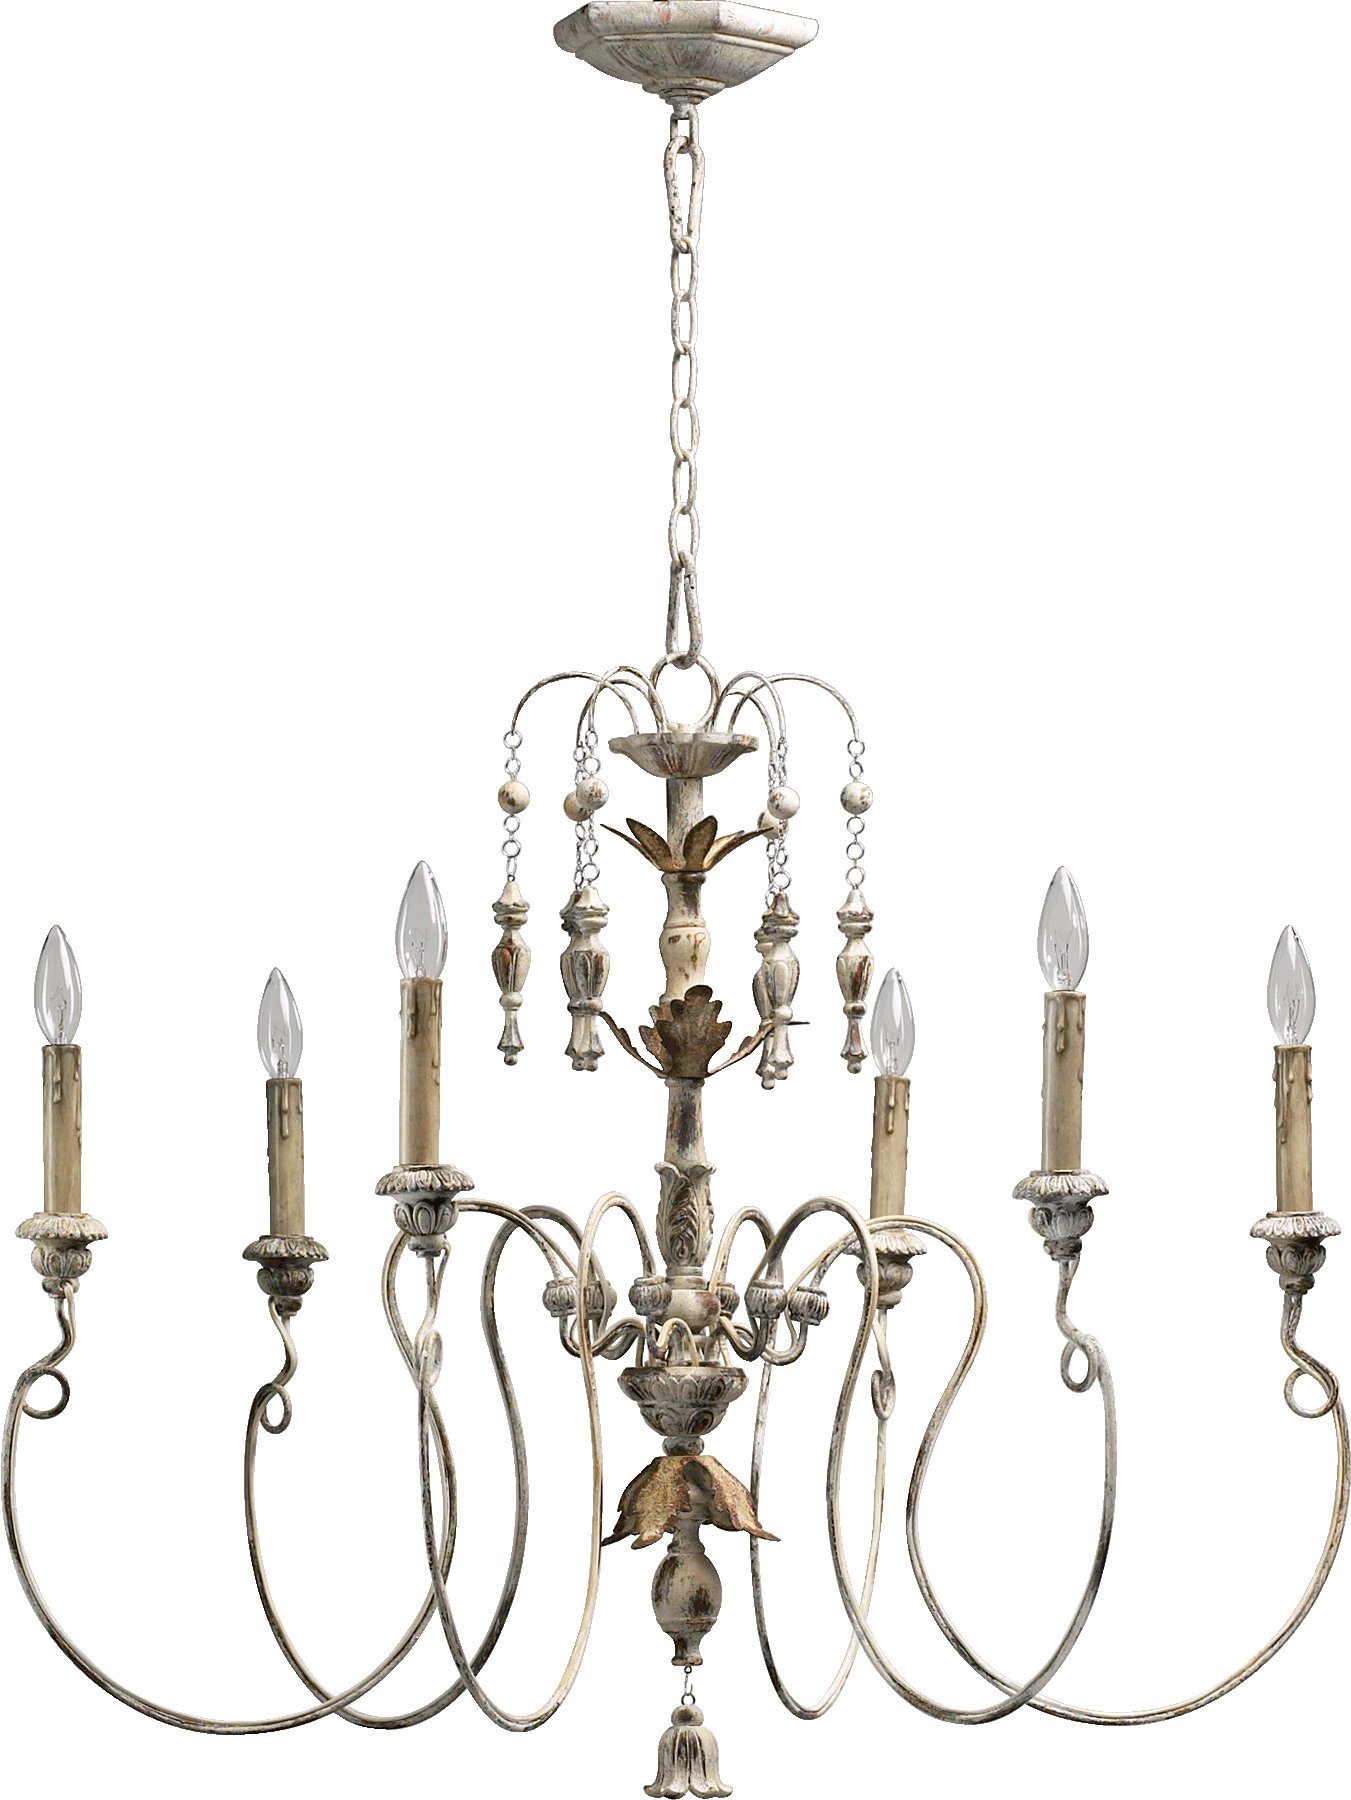 Paladino 6-Light Chandelier intended for Corneau 5-Light Chandeliers (Image 23 of 30)